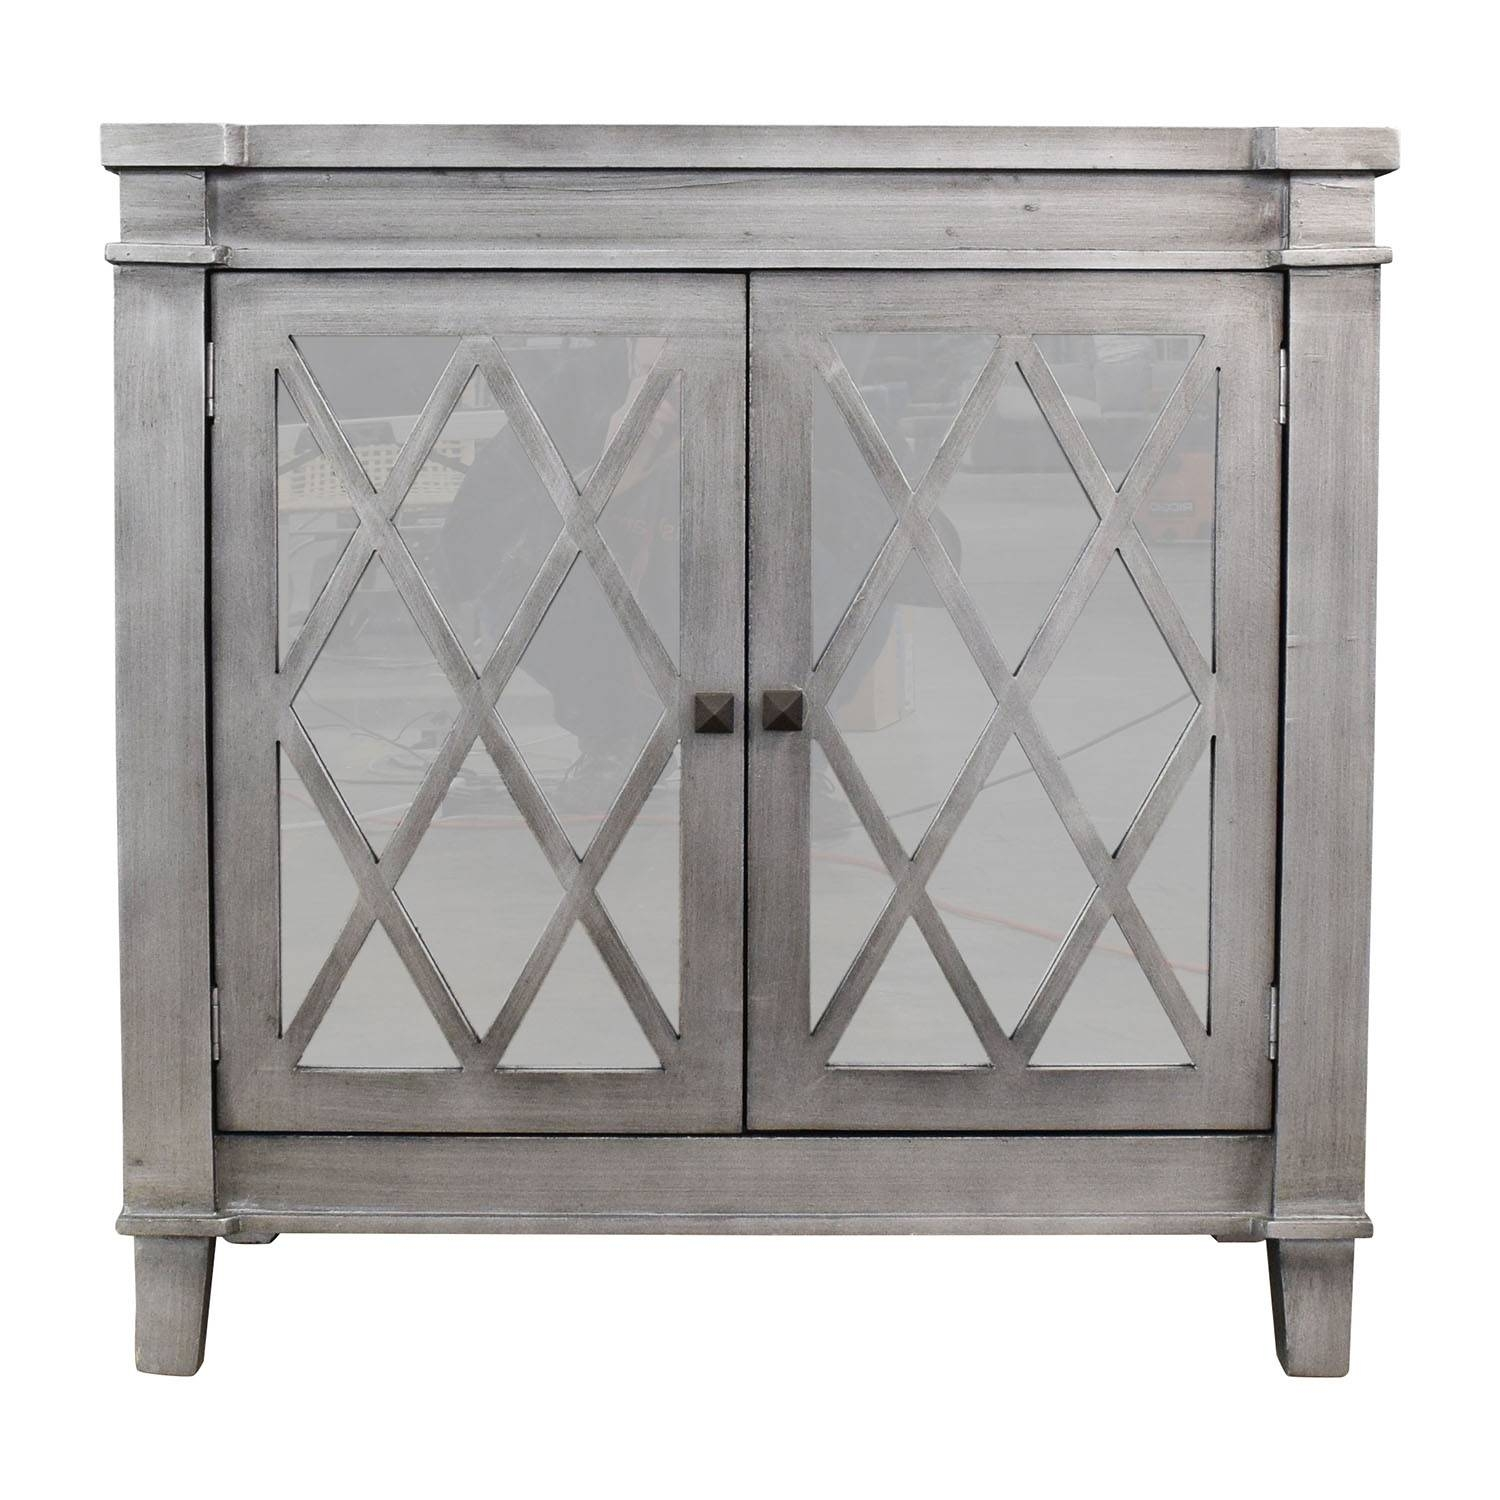 Buy Used Cabinets & Sideboards Under $500 inside White Mirrored Sideboards (Image 8 of 30)